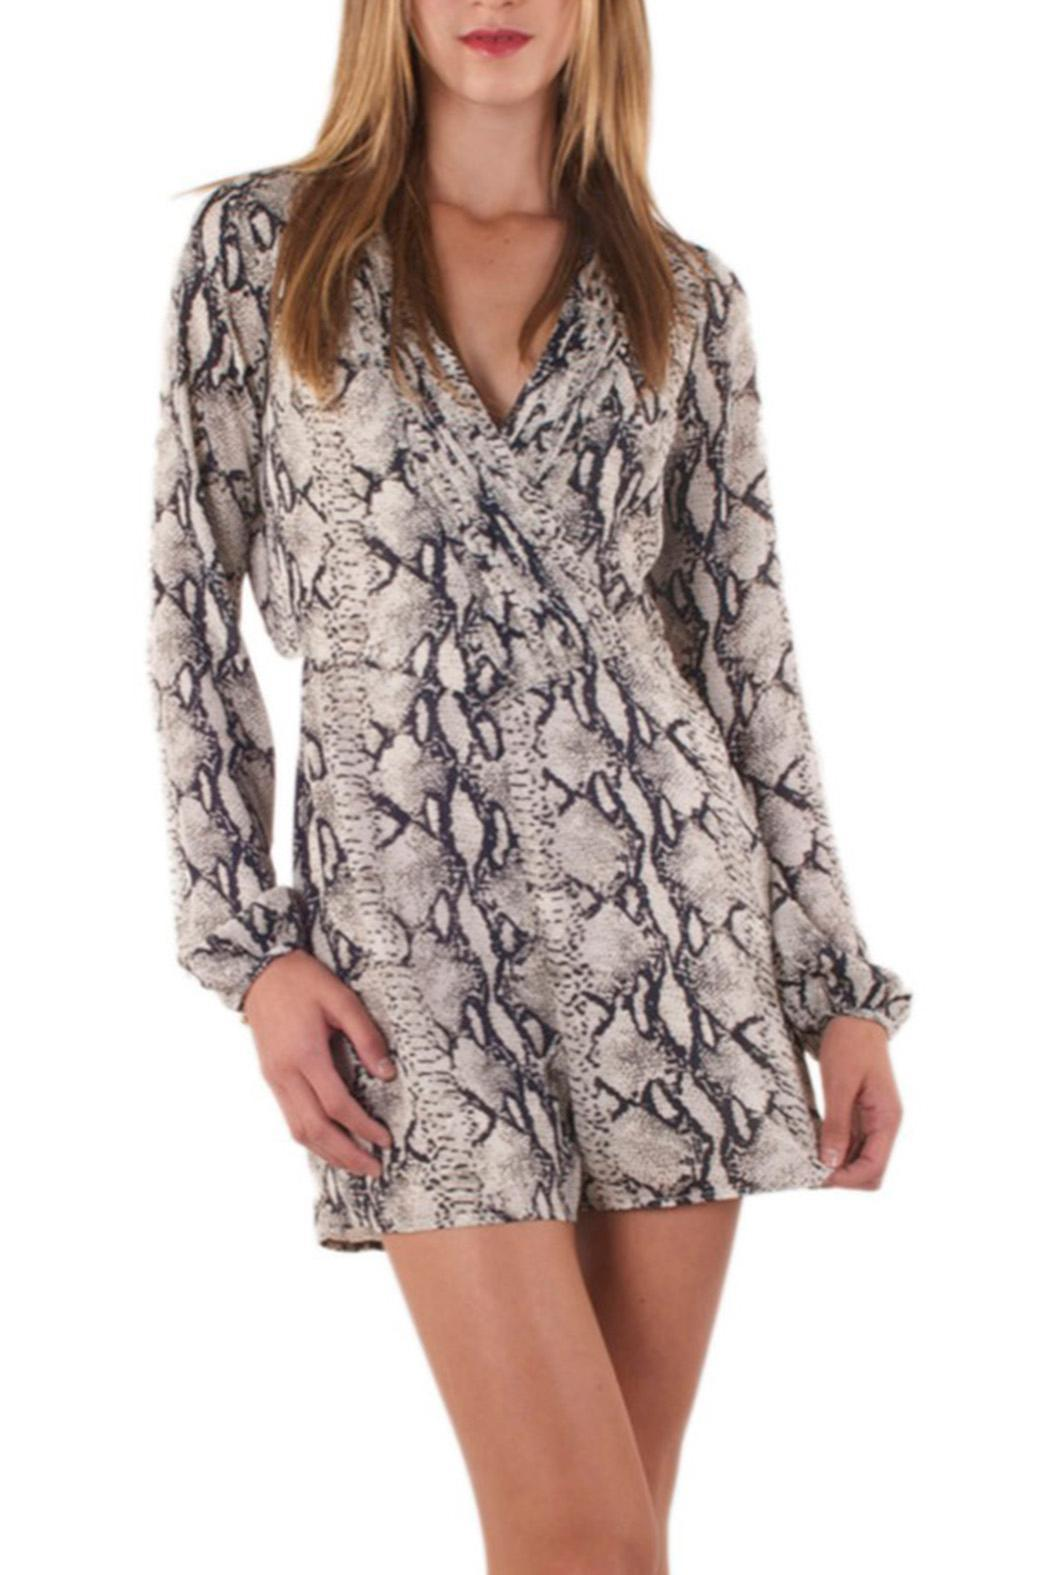 ac48e243cf4e Ark   Co. Snake-Print Romper from Las Vegas by R+D — Shoptiques